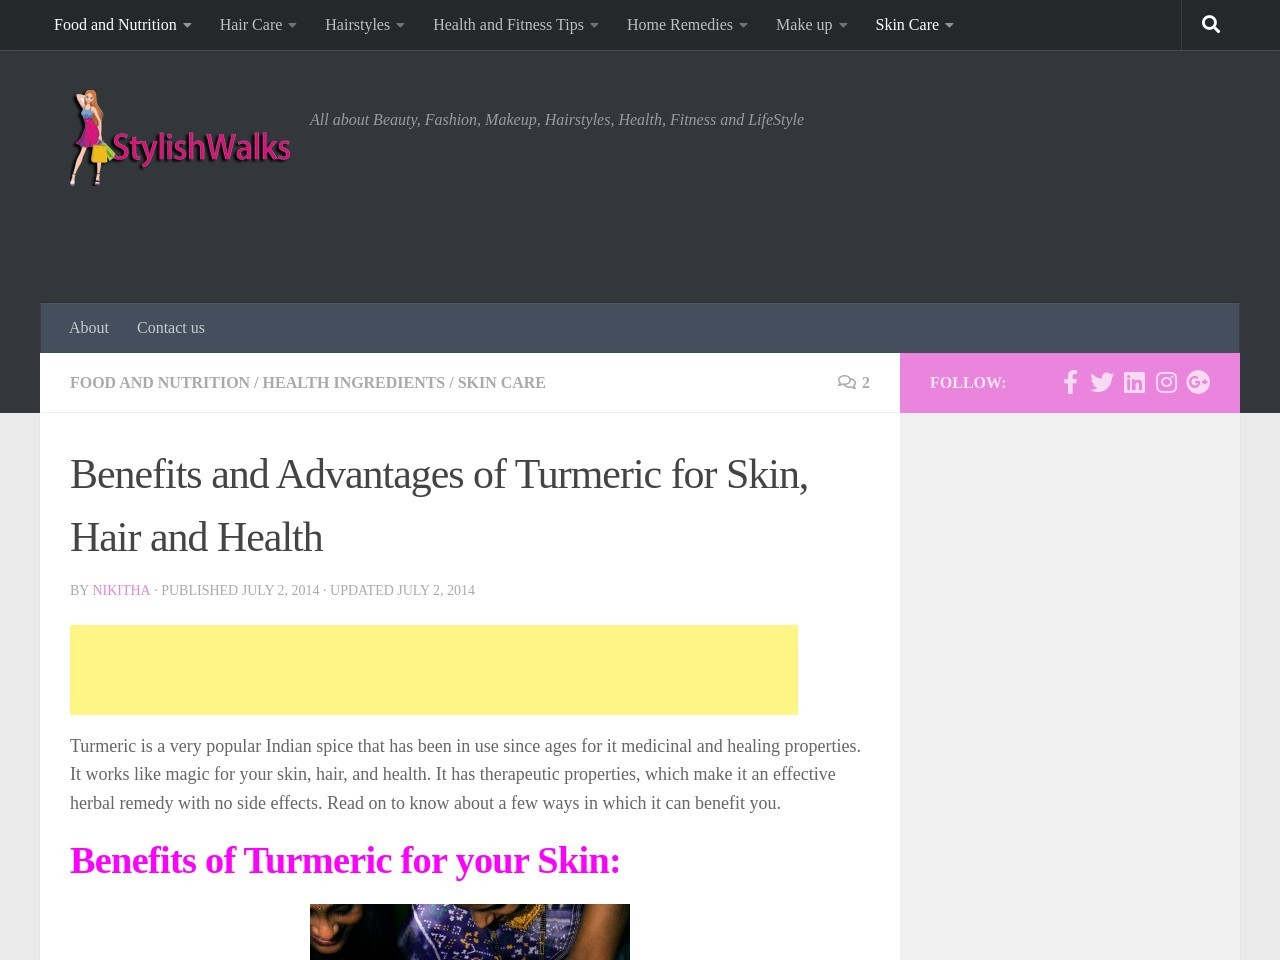 Benefits and Advantages of Turmeric for Skin, Hair and Health